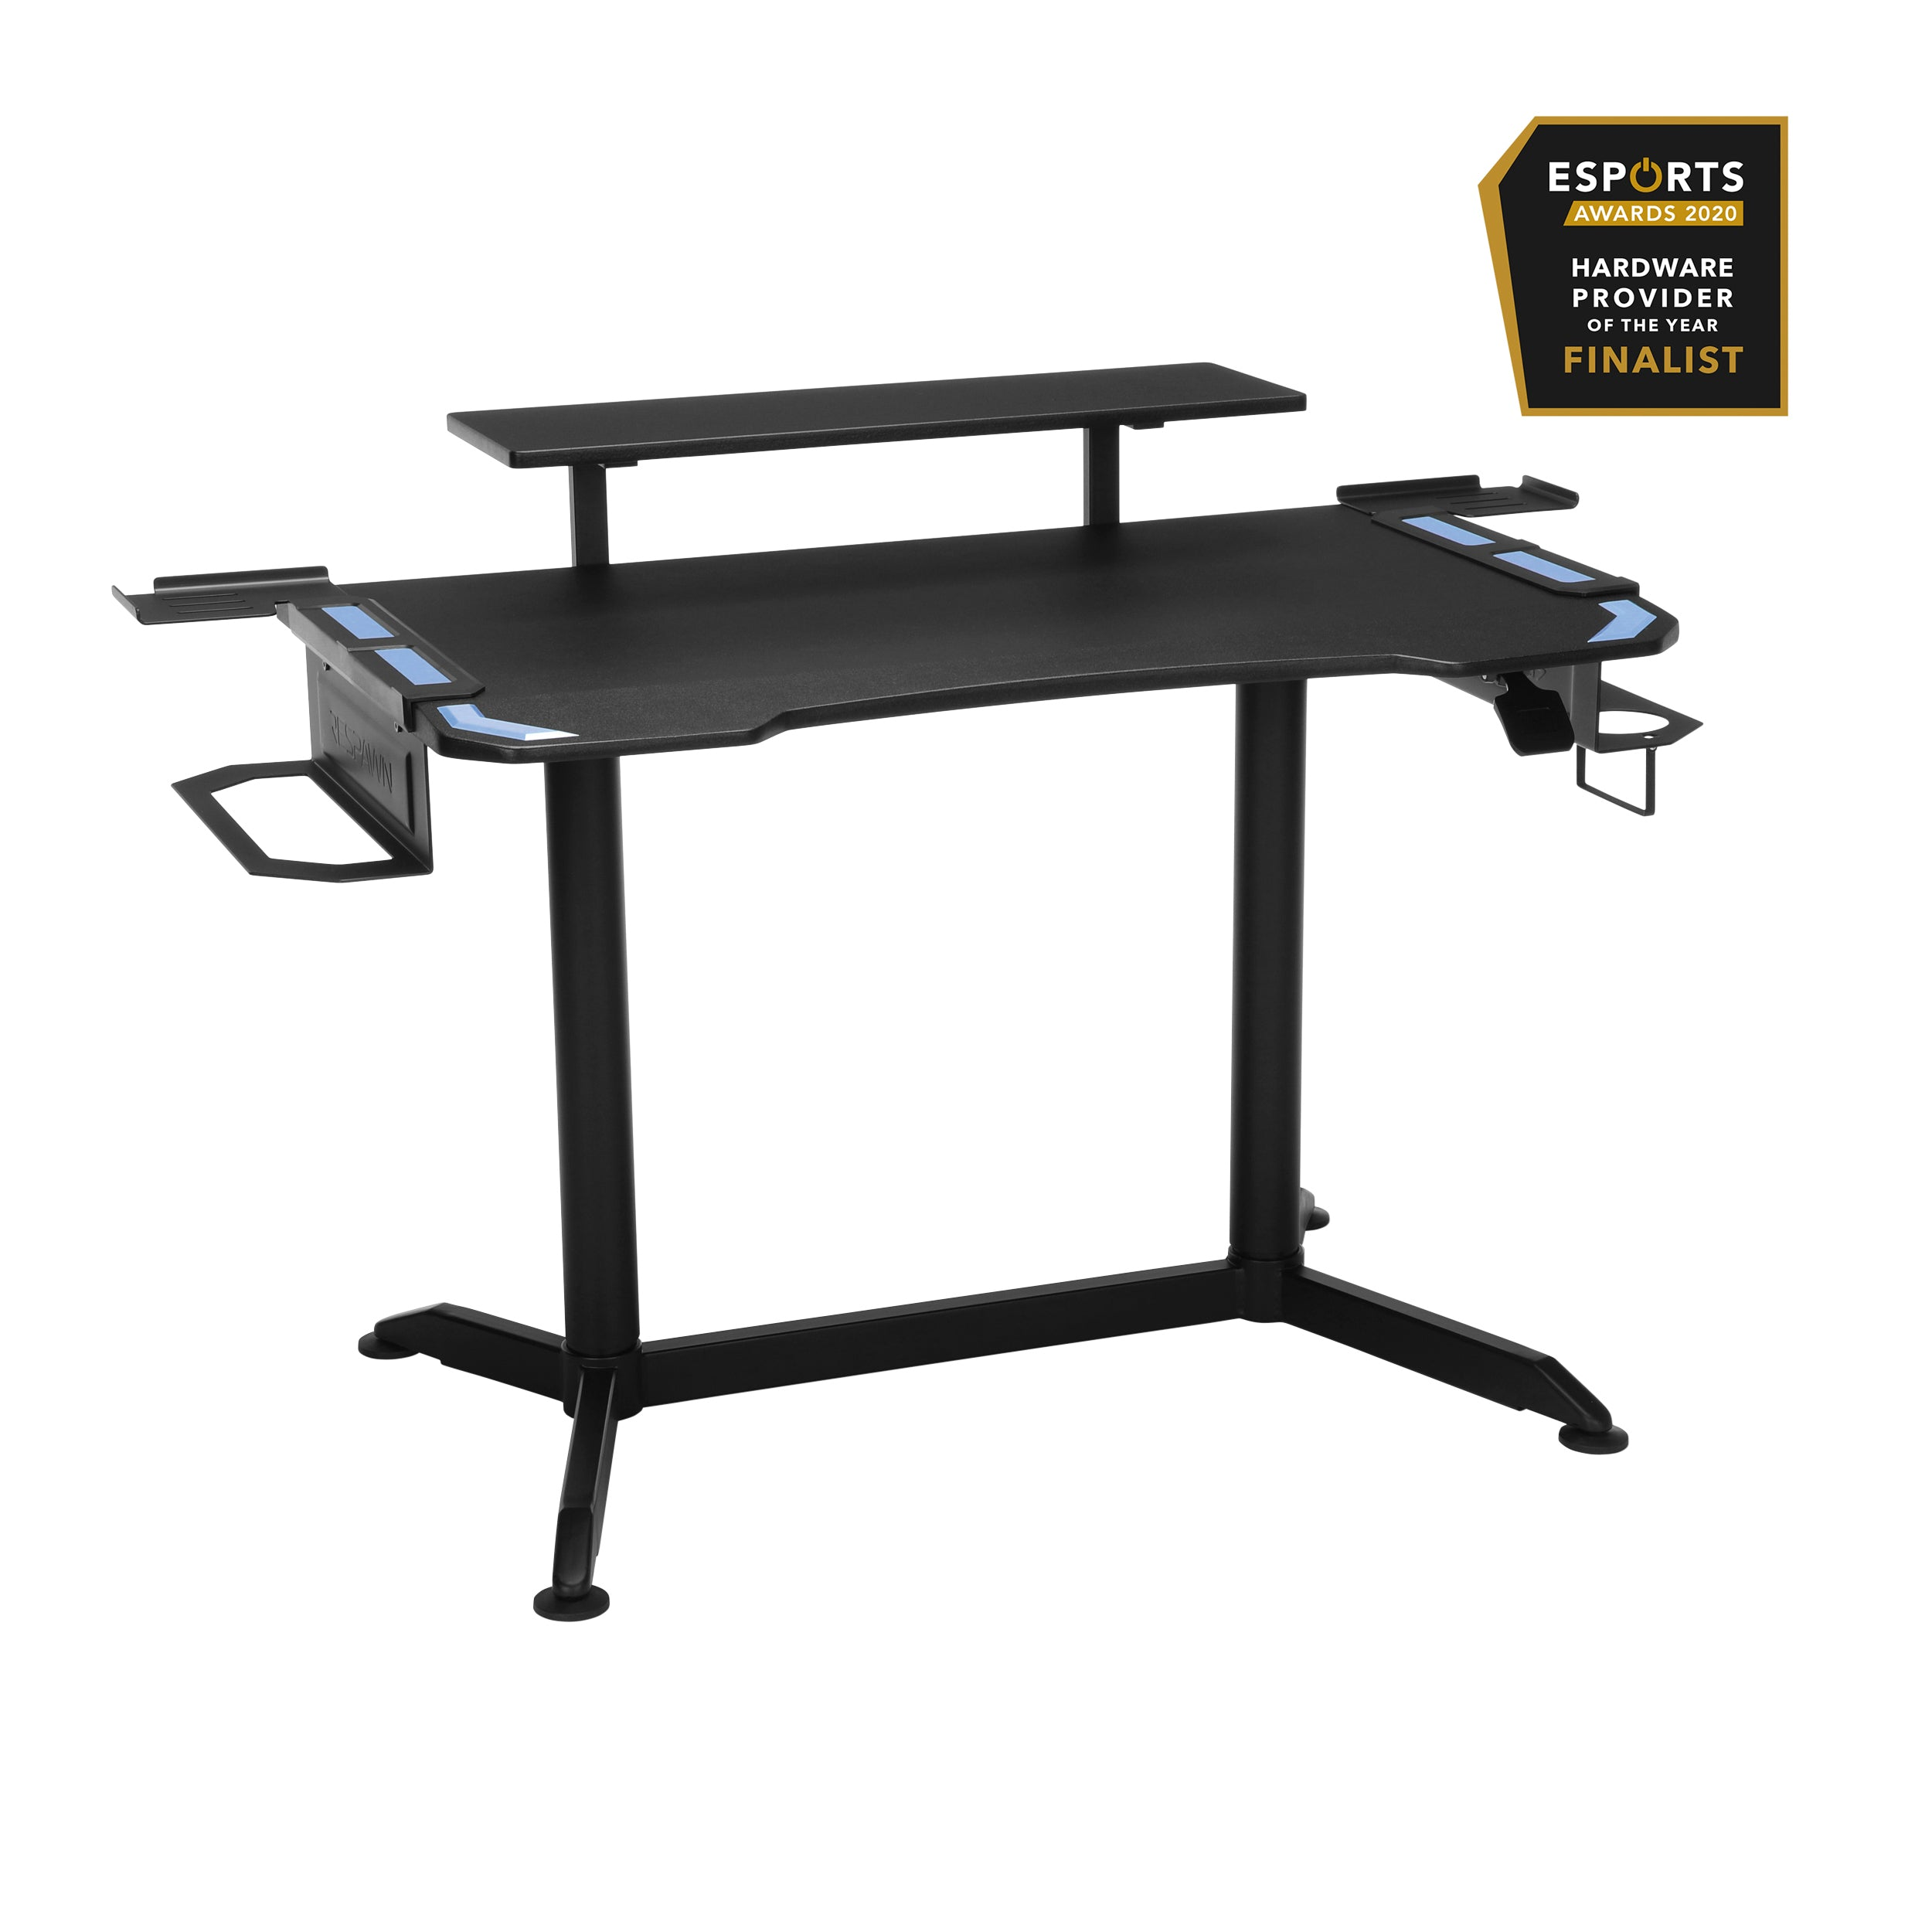 3010 Gaming Computer Desk Ergonomic Height Adjustable Gaming Desk